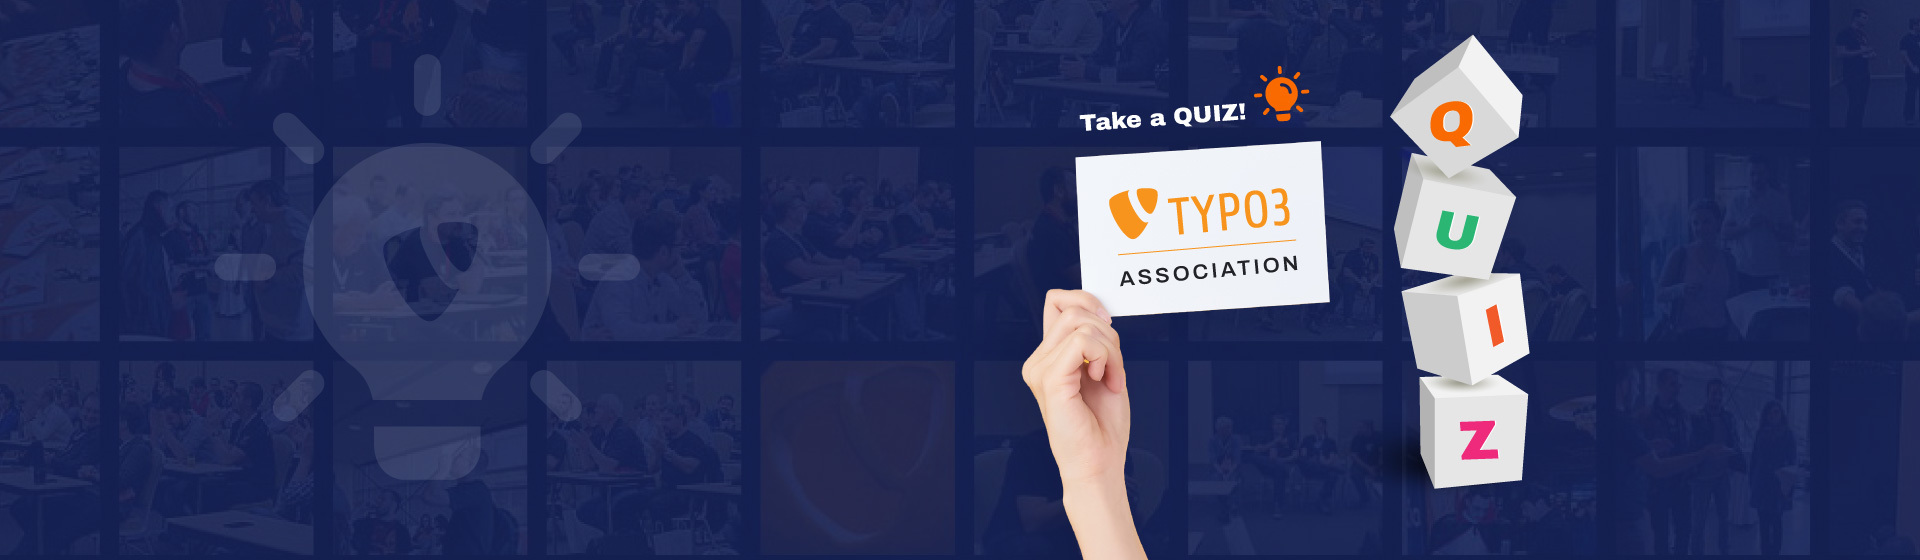 How Well Do You Know About TYPO3 Association?